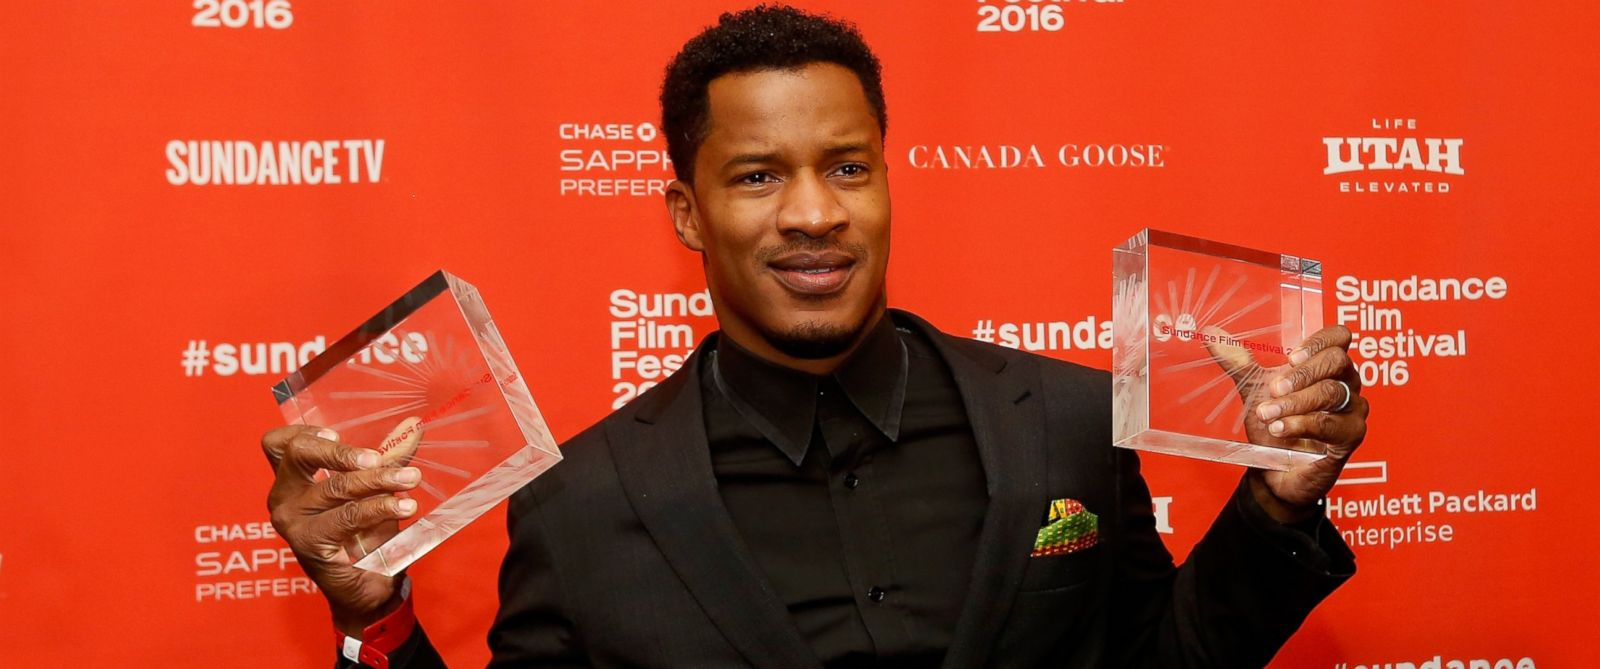 PHOTO: Director Nate Parker, poses at the Sundance Film Festival Awards Ceremony, Jan. 30, 2016 in Park City, Utah.